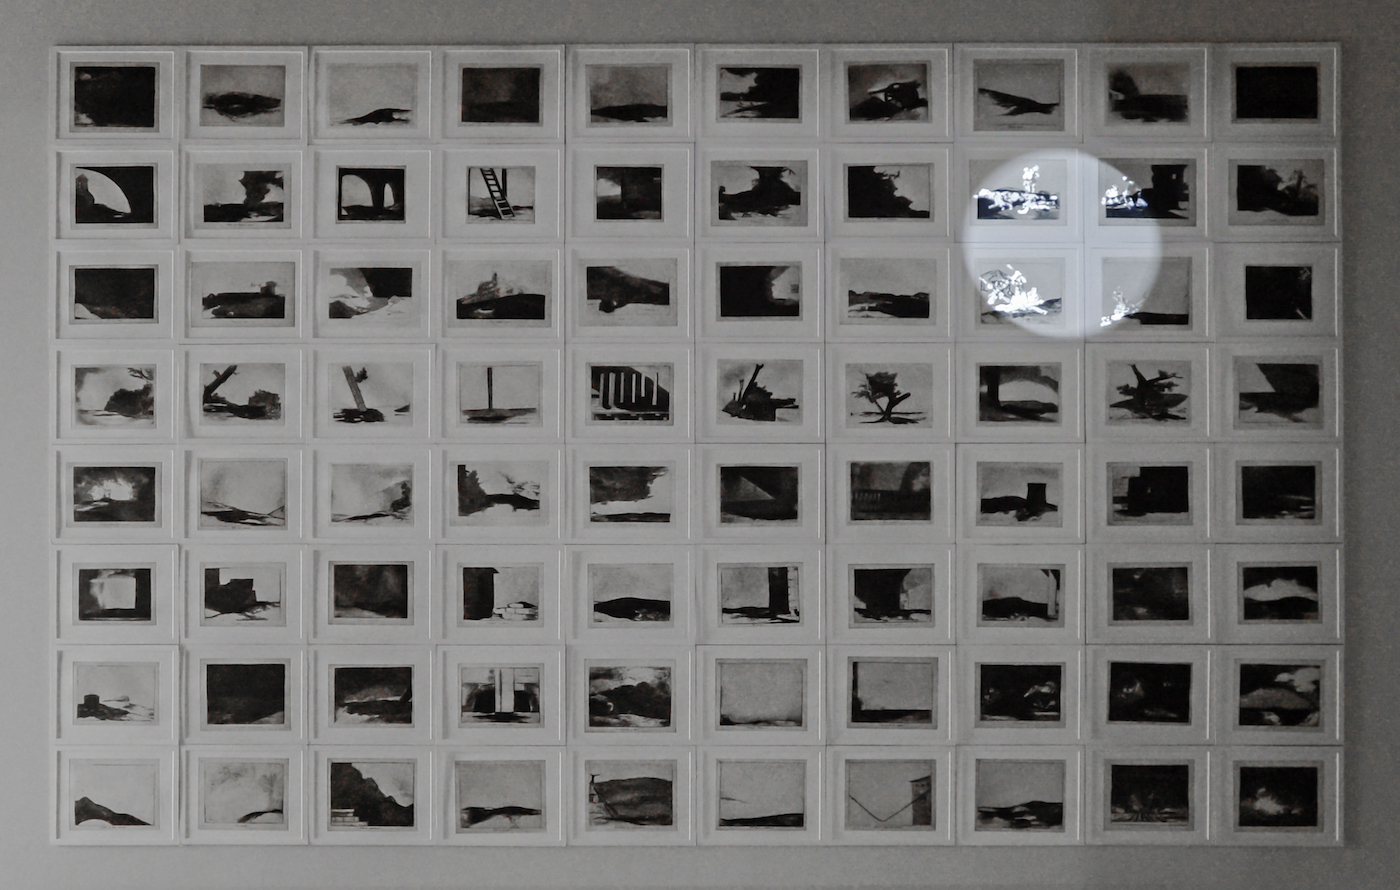 """Farideh Lashai, """"When I Count, There Are Only You ... But When I Look, There Is Only a Shadow"""" (2012–13), suite of 80 photo-intaglio prints with projection of animated images, 3:46, Sharjah Art Foundation Collection (courtesy of the estate of the artist, image courtesy of Sharjah Art Foundation)"""